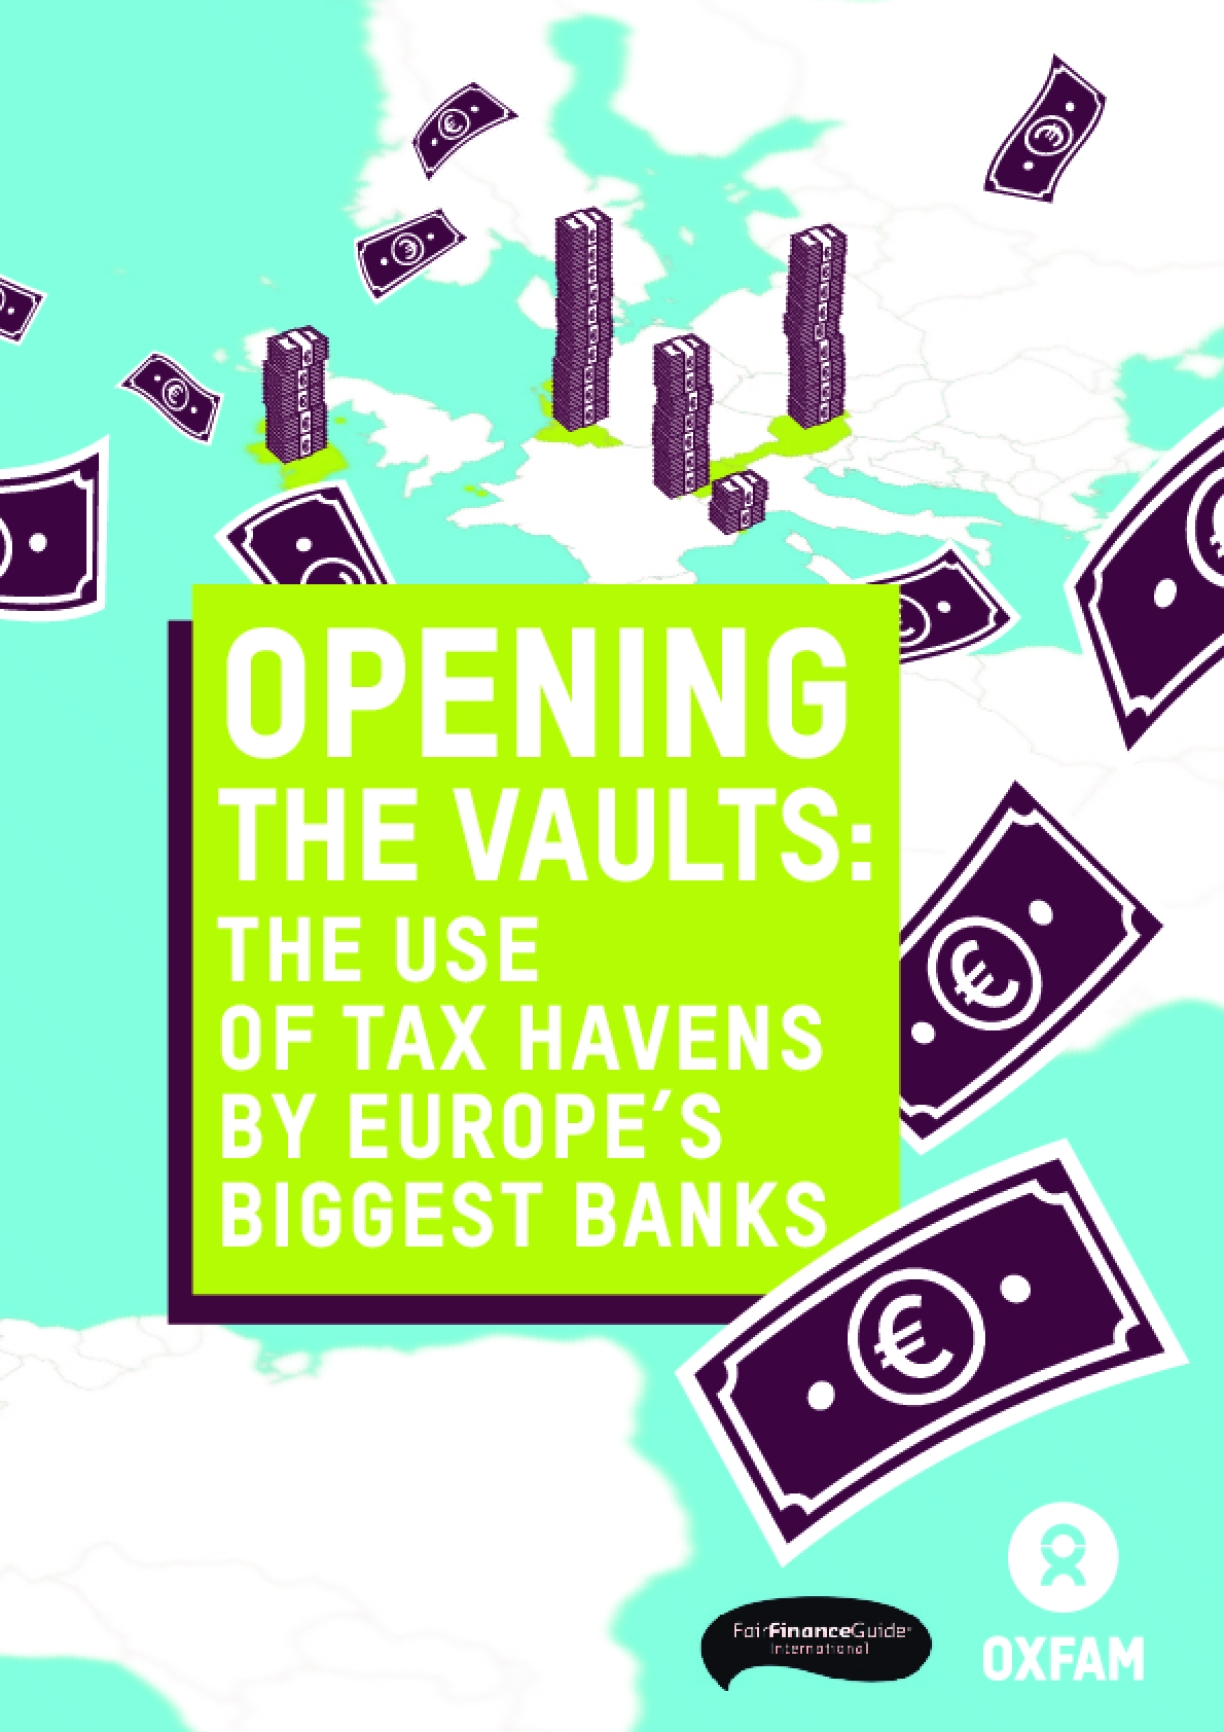 Opening the Vaults: The Use of Tax Havens by Europe's Biggest Banks